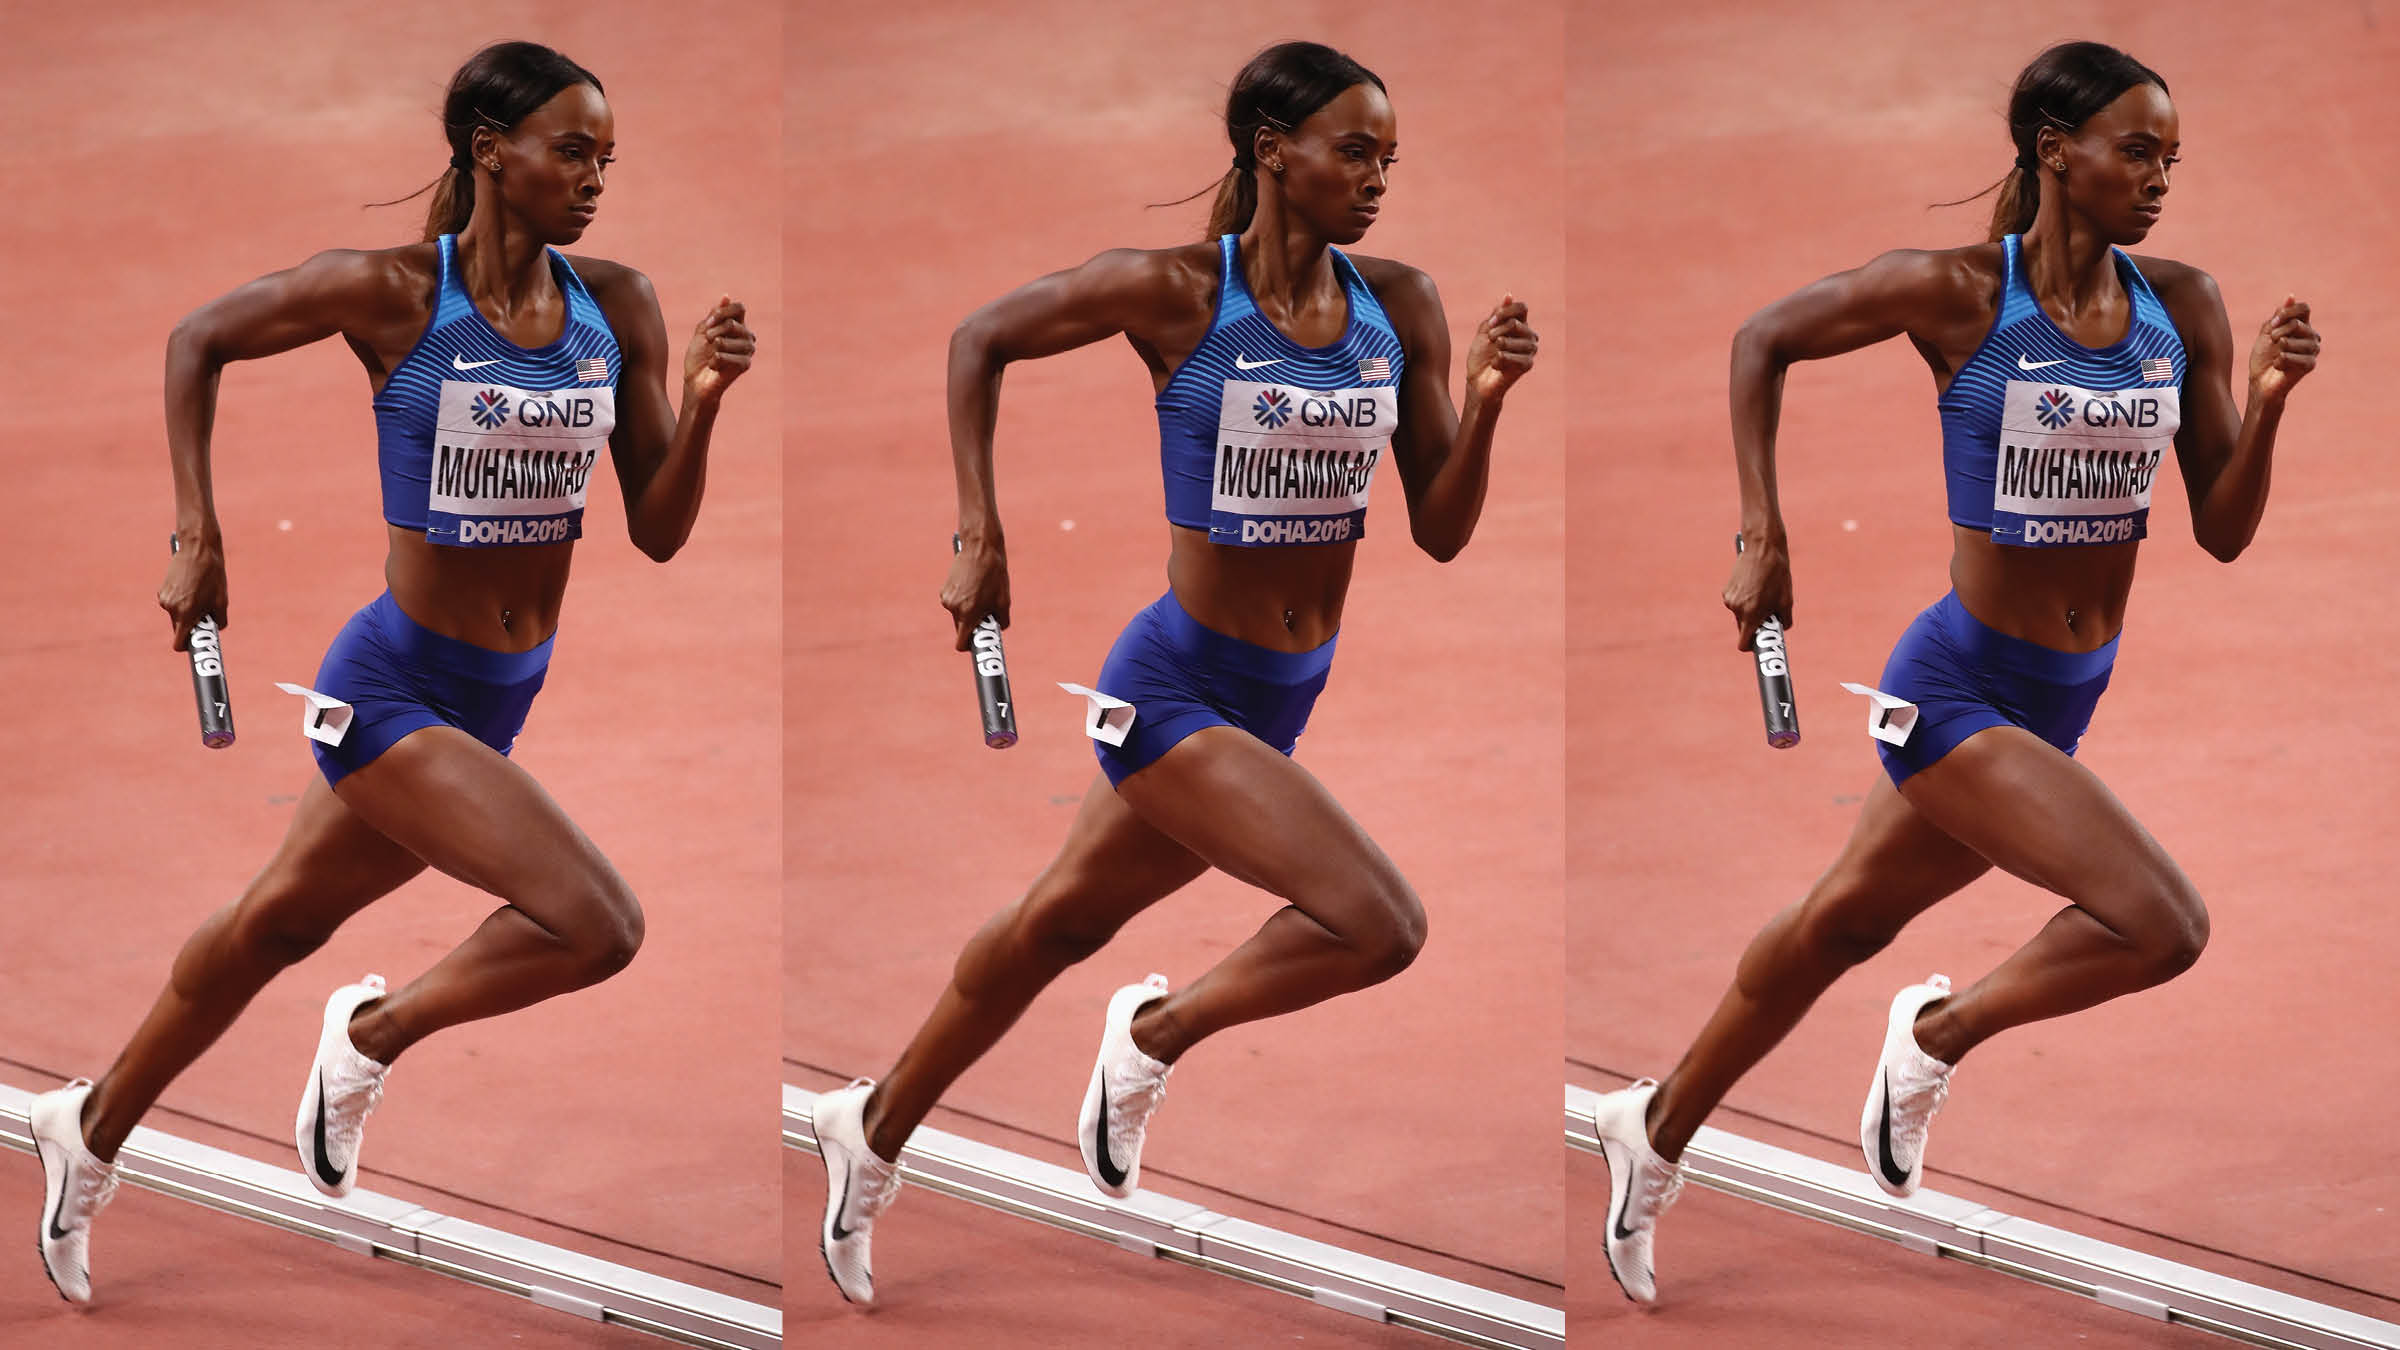 Delilah Muhammad competes for Team USA on the track